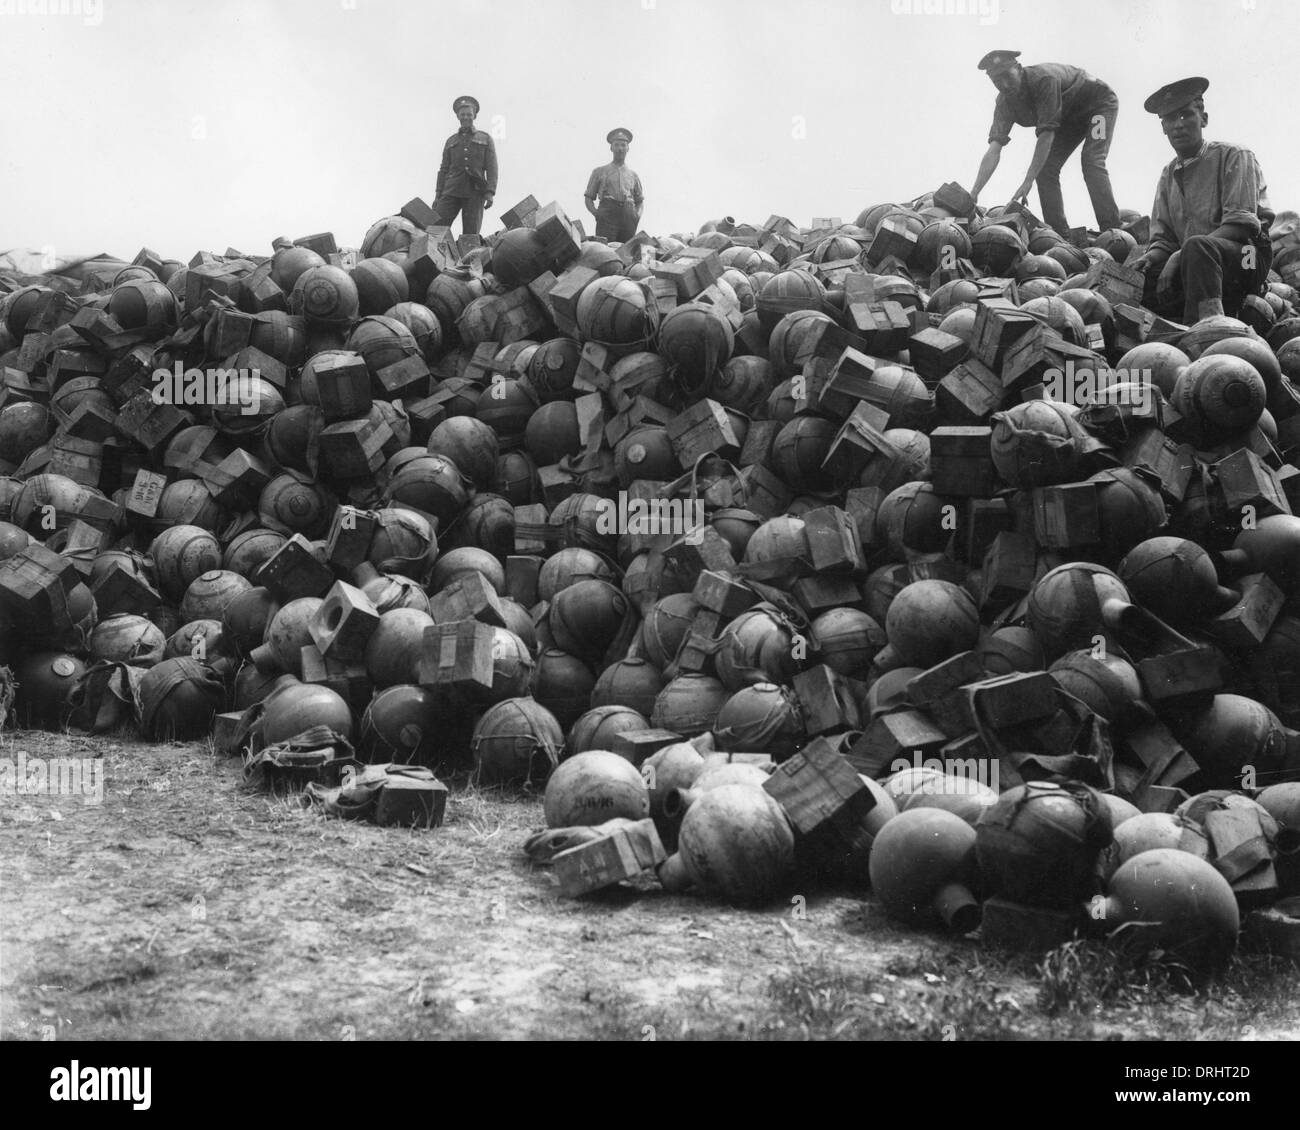 Supply dump of trench mortar ammunition, France, WW1 - Stock Image